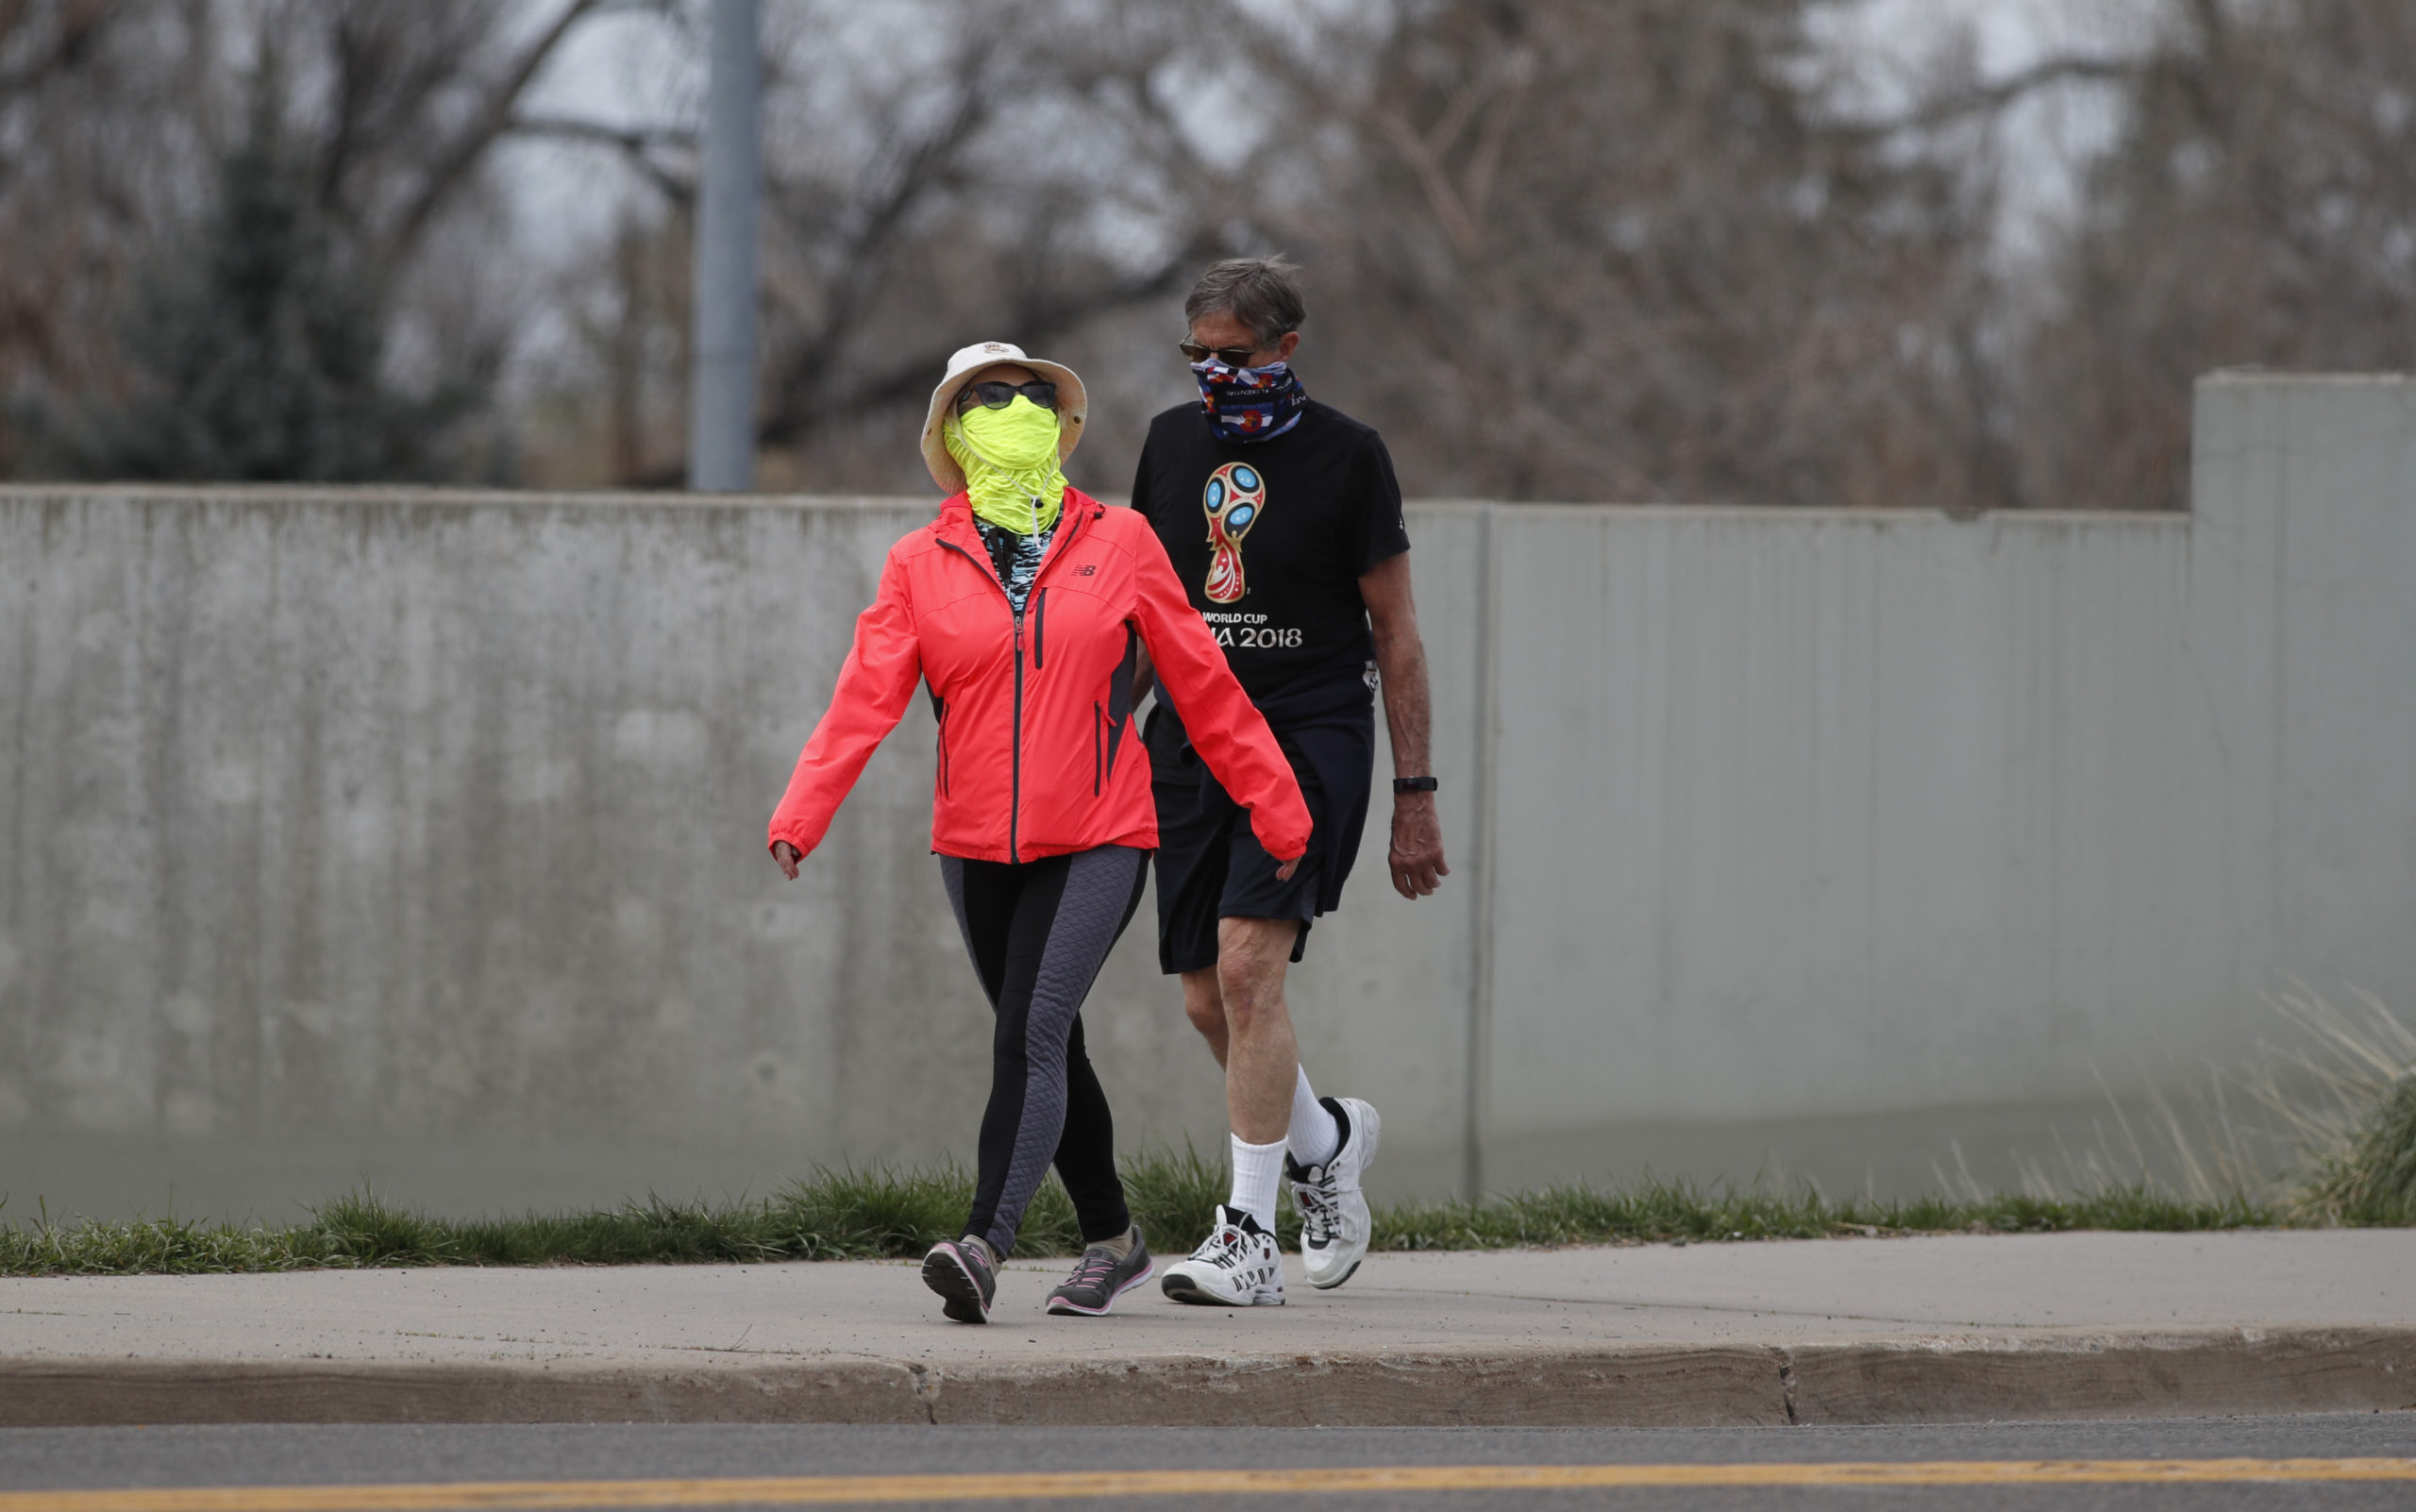 Pedestrians wear masks to comply with a request by Colorado Gov. Jared Polis while they walk along South St. Paul Street as a statewide stay-at-home order remains in effect in an effort to reduce the spread of the new coronavirus, Sunday, April 5, 2020, in Denver.